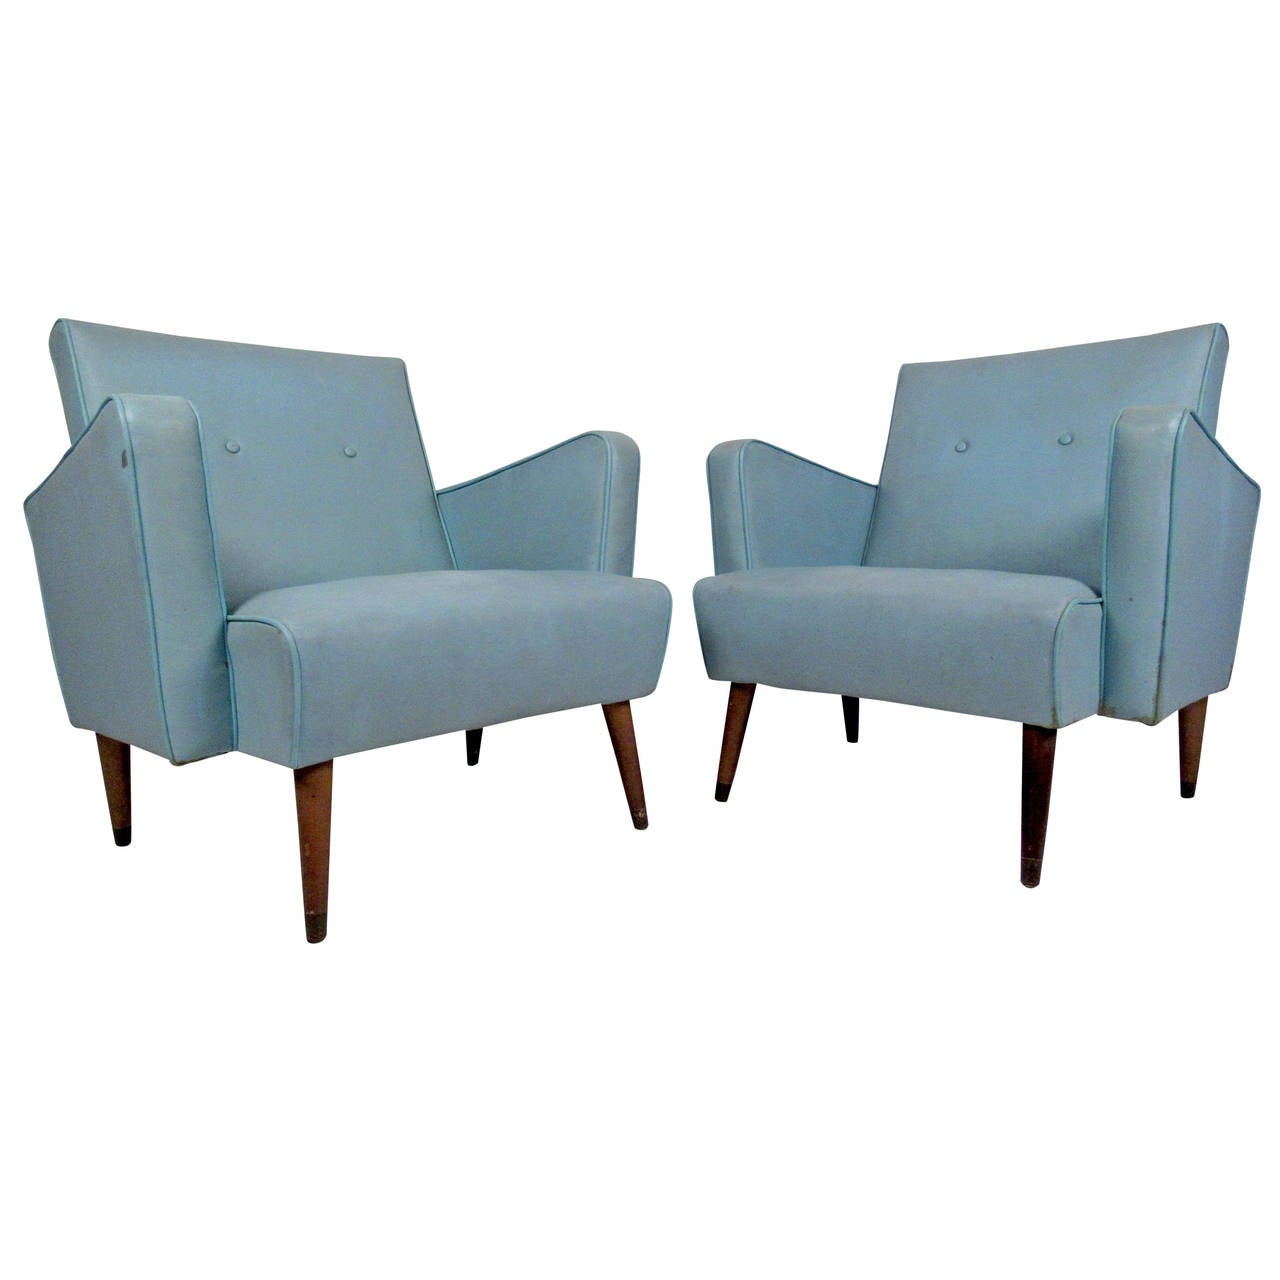 Pair Of Mid Century Modern Vinyl Lounge Chairs In The Style Of Paul McCobb  For